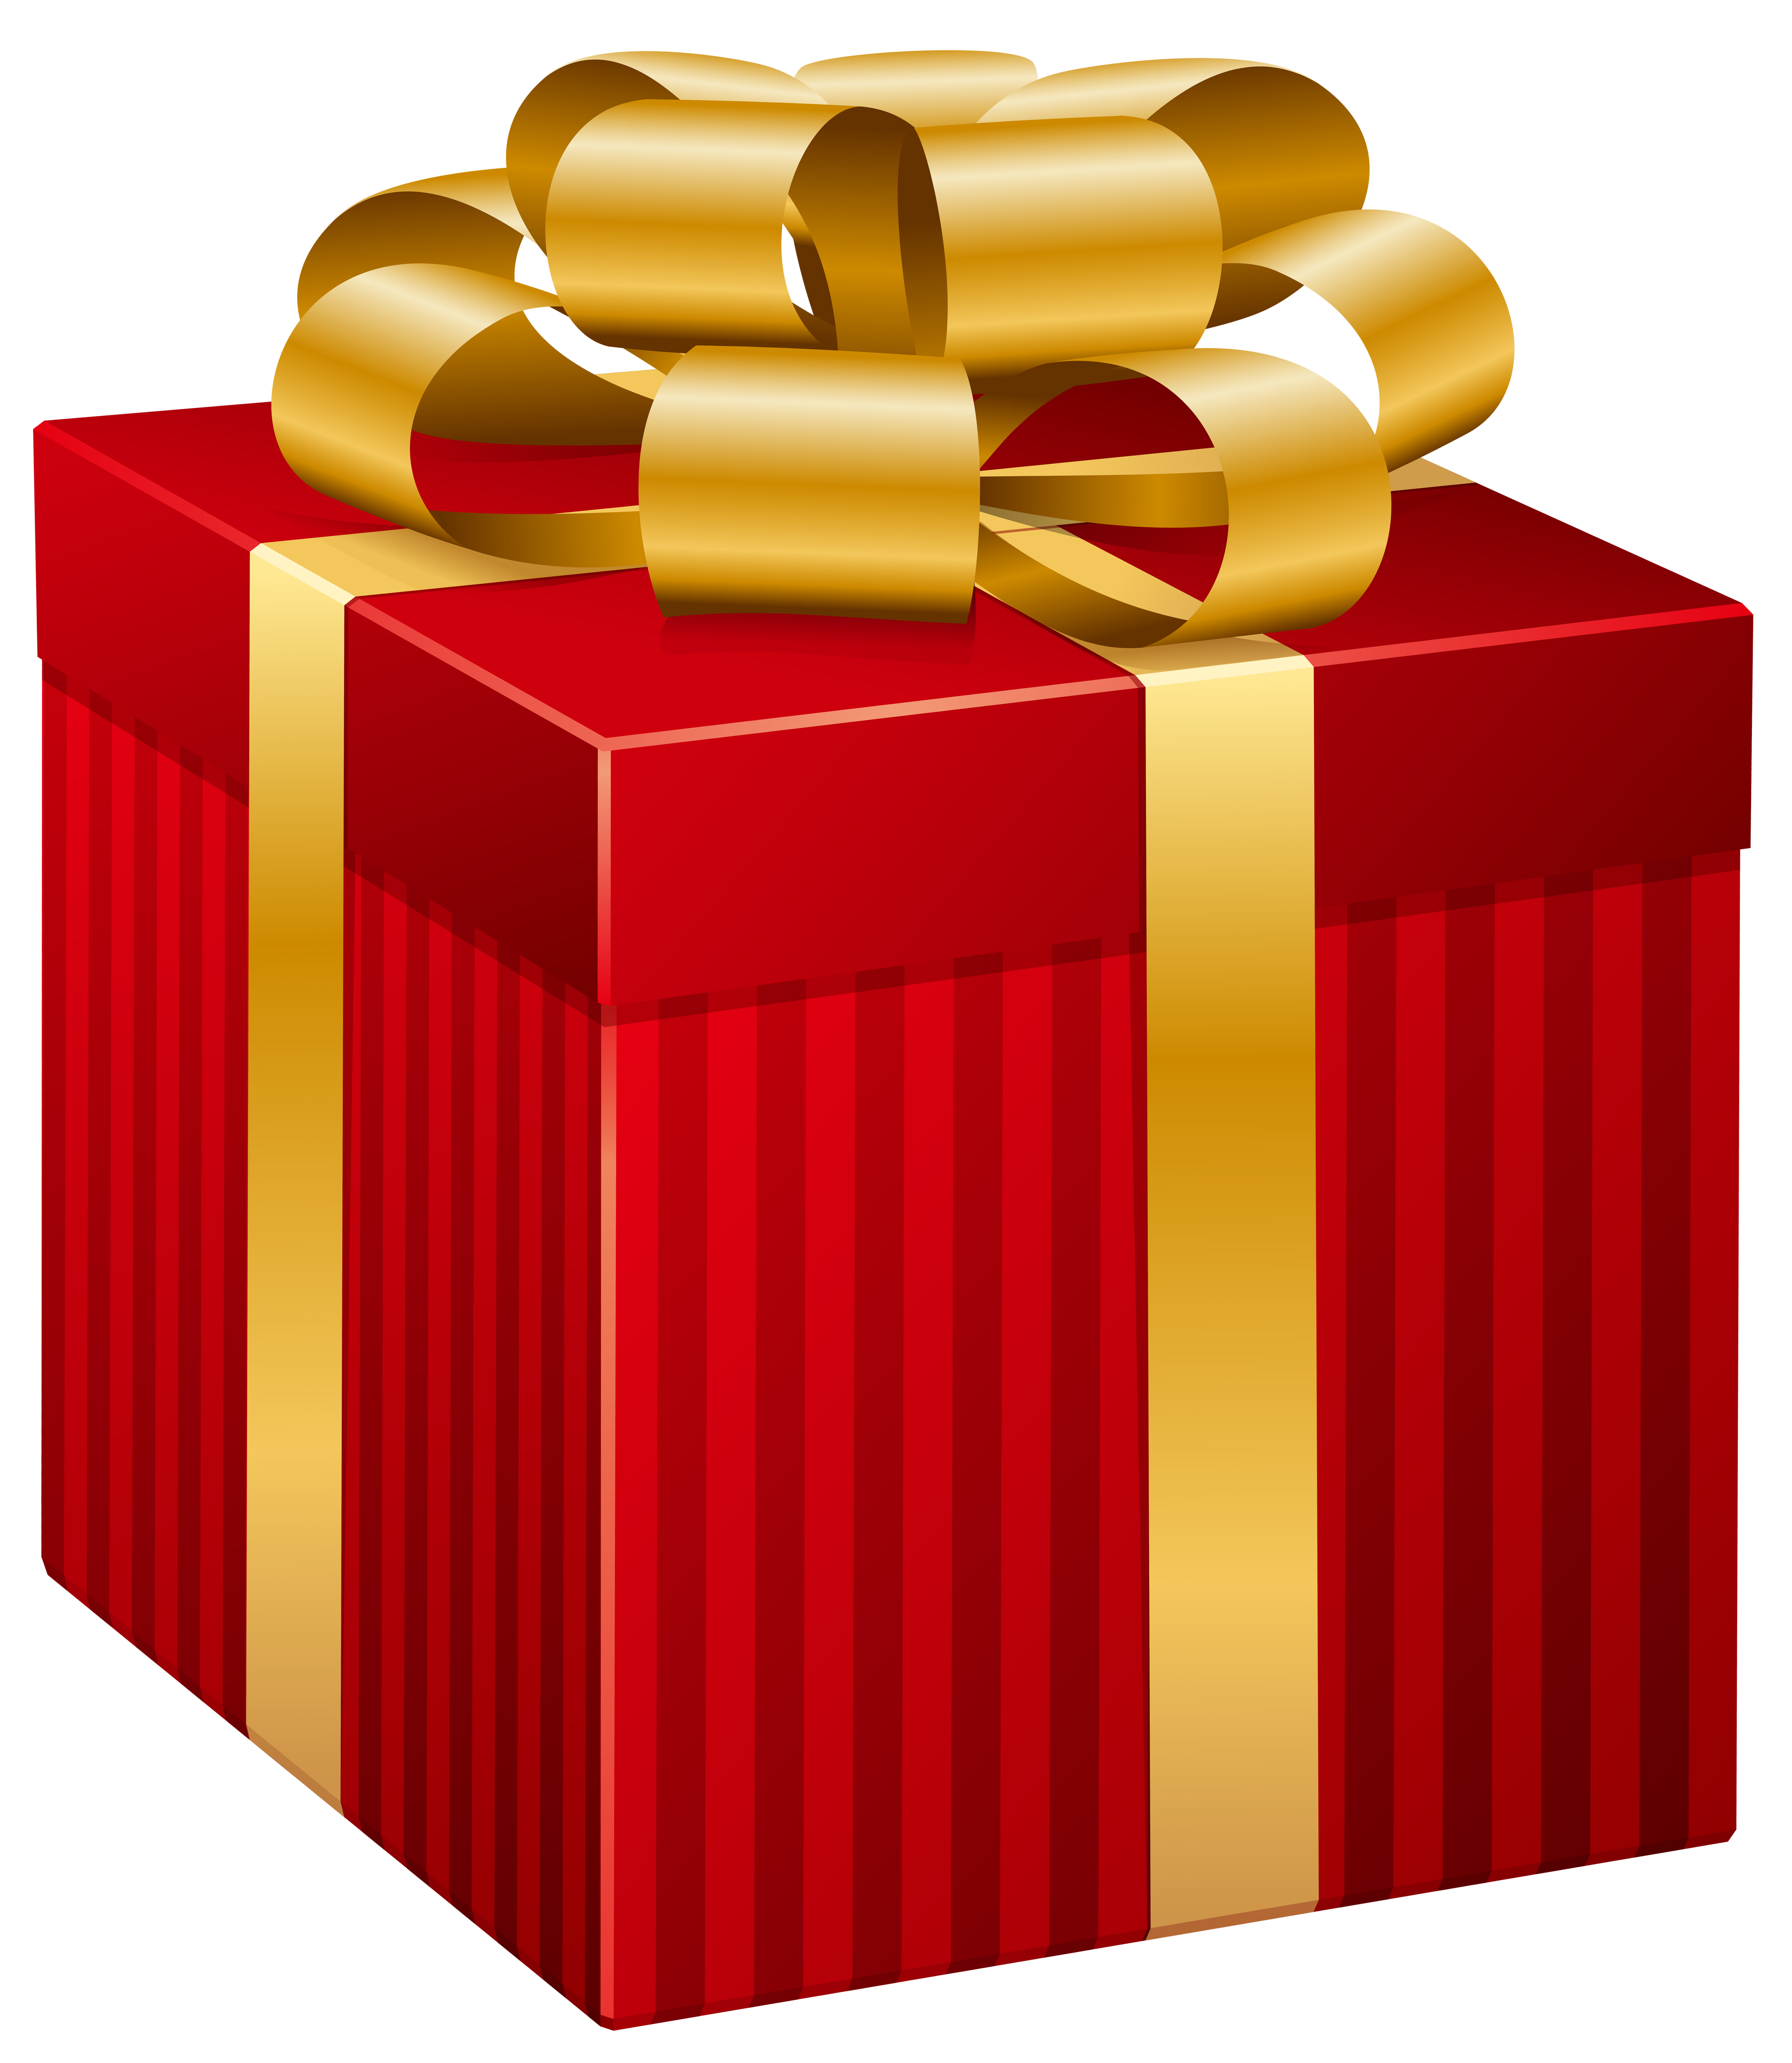 Red Striped Gift Box PNG Clip Art Image.